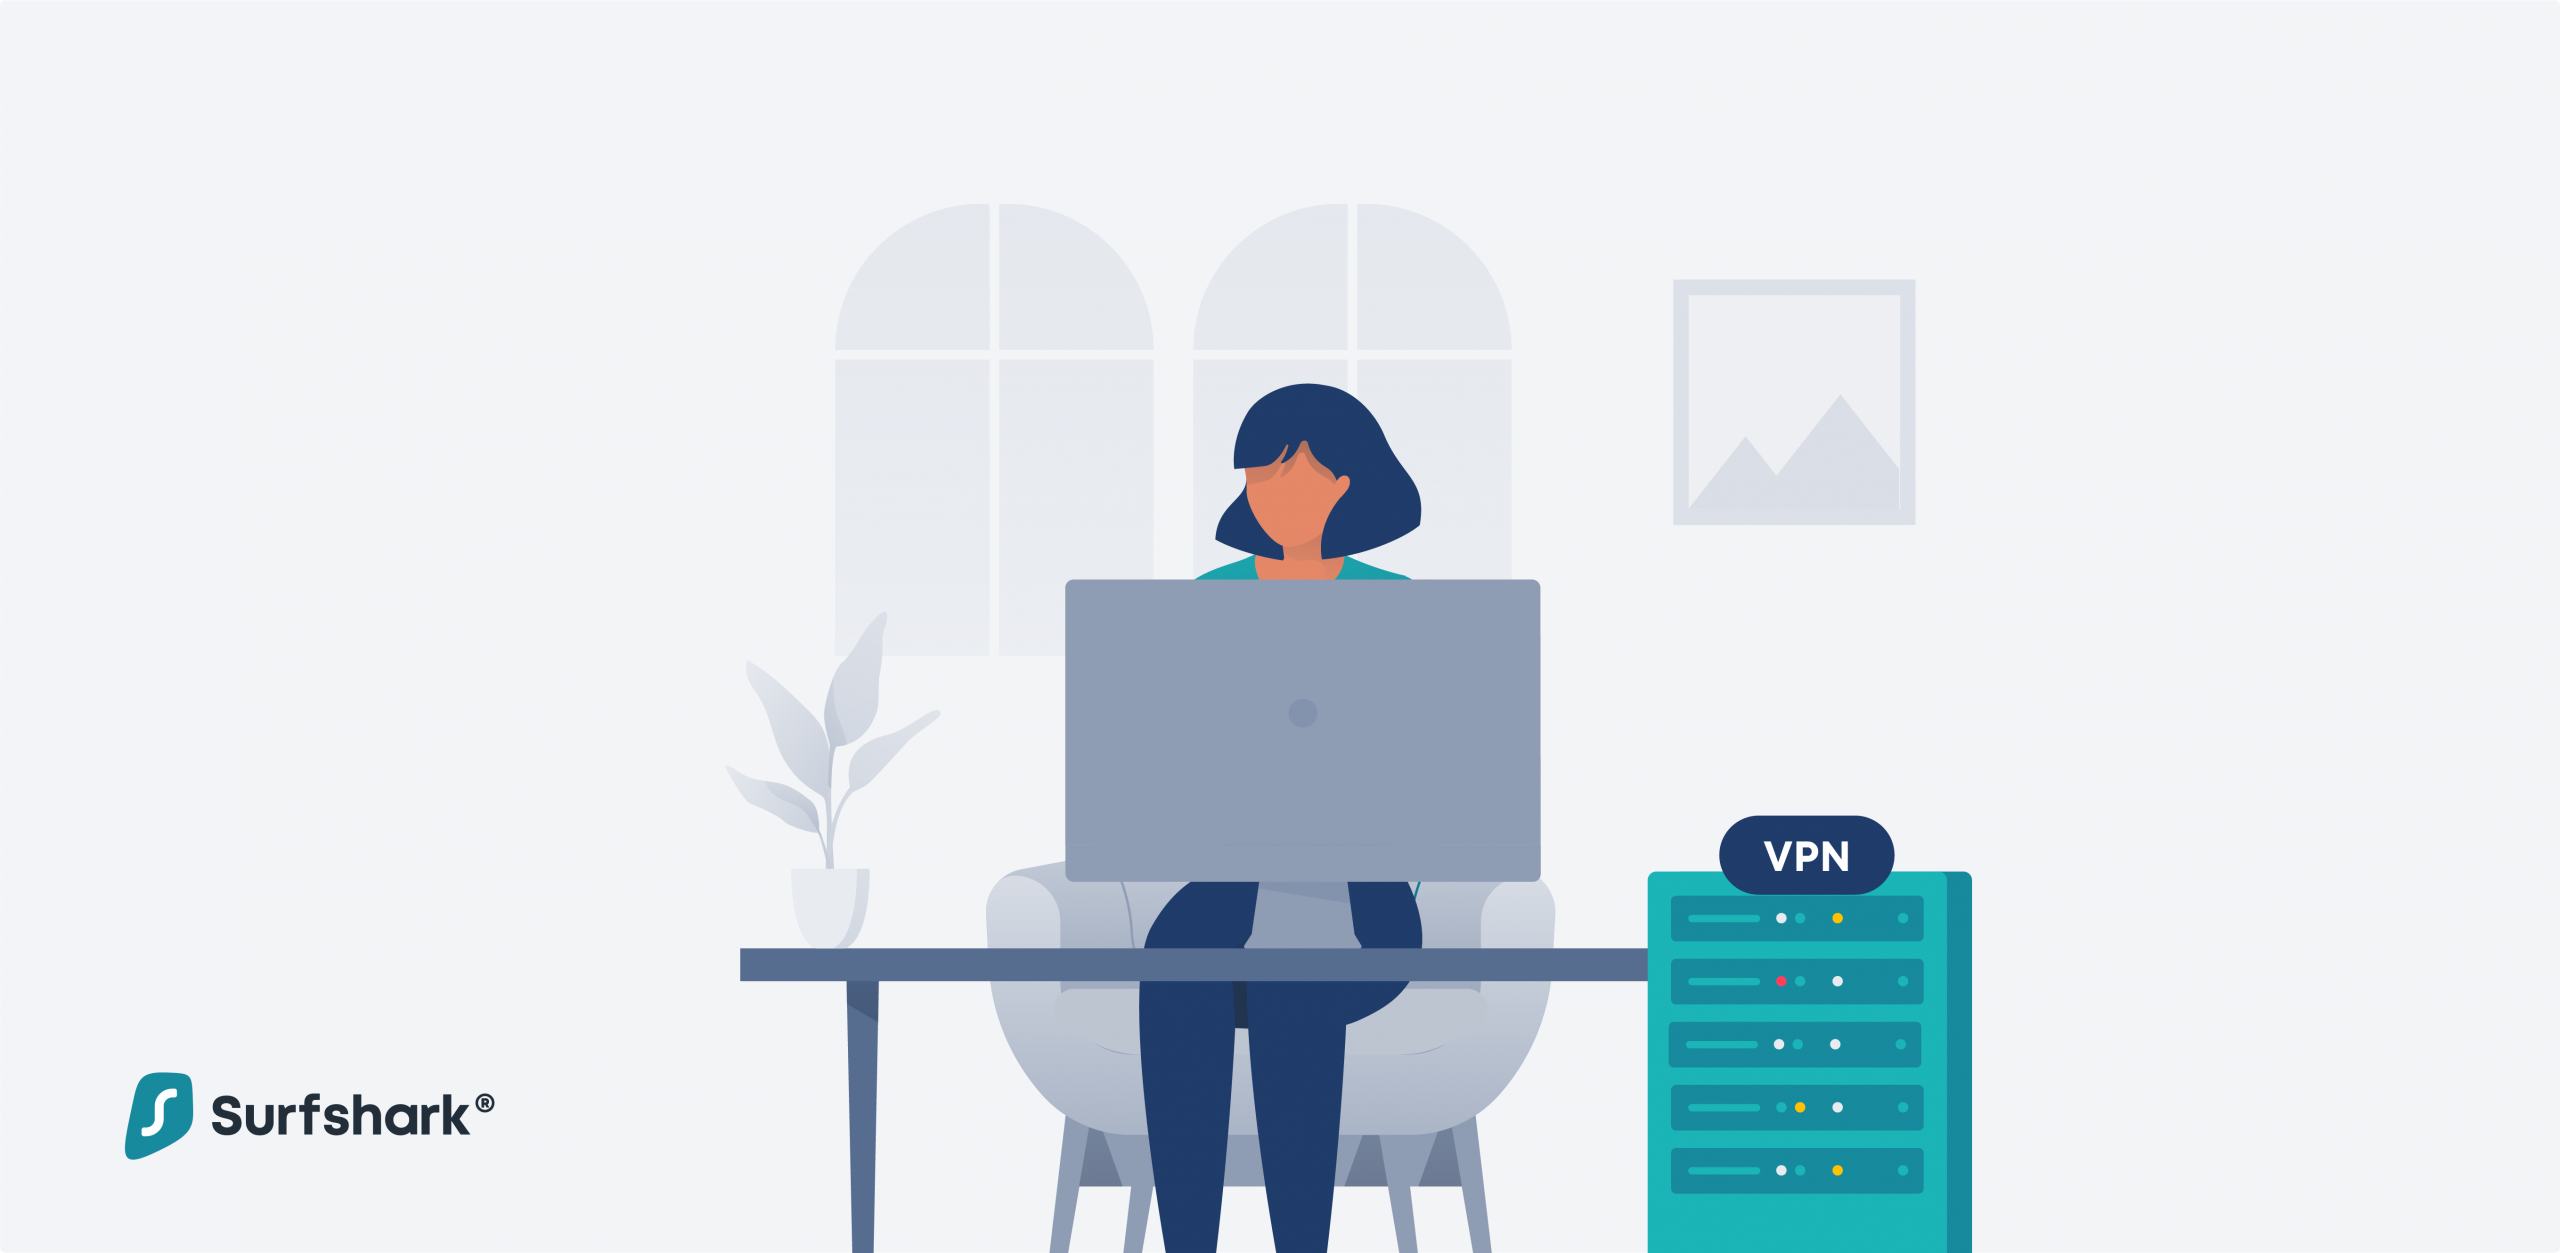 a woman setting up a vpn server at home